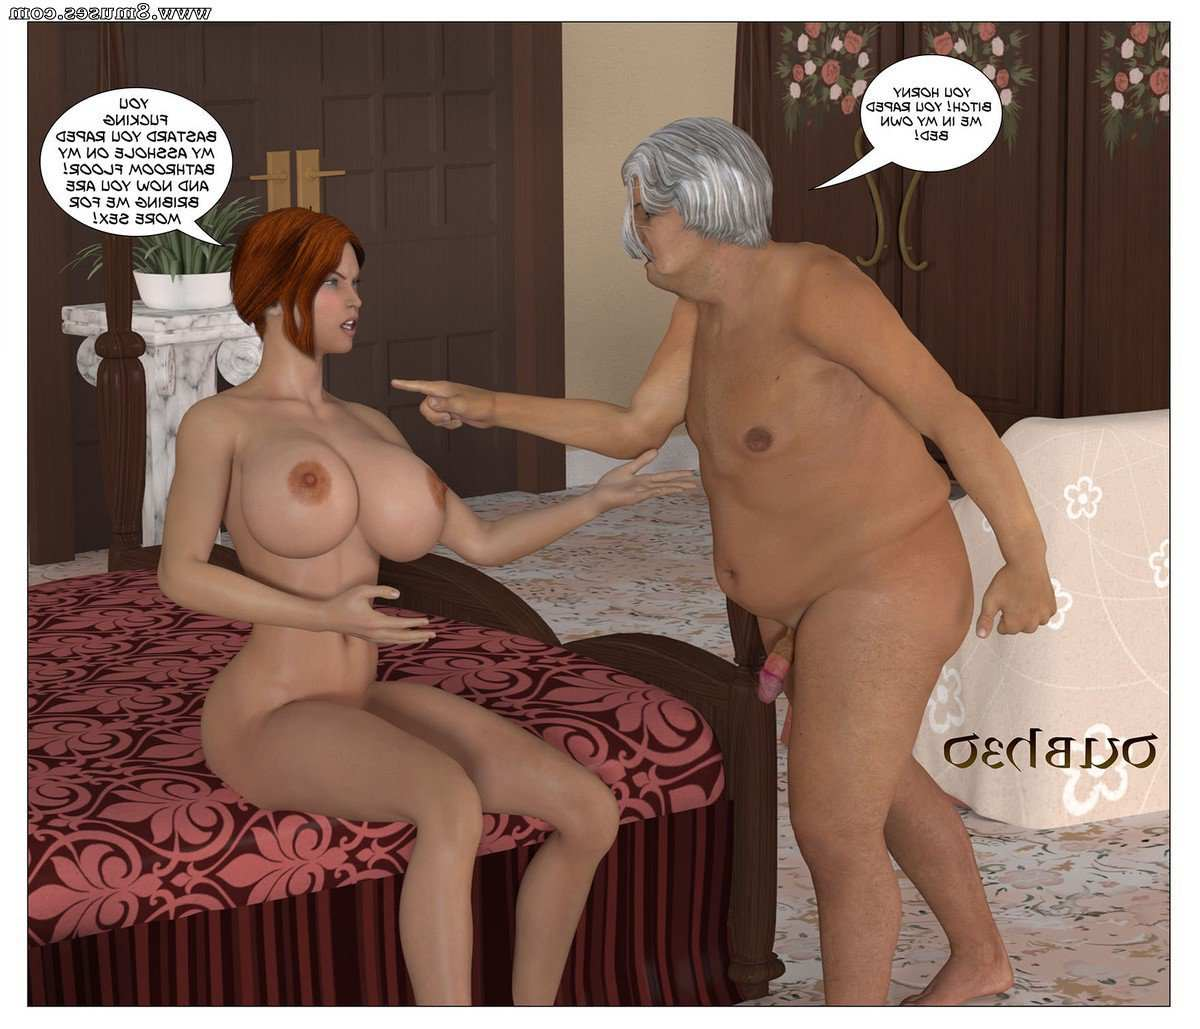 Dubh3d-Dubhgilla-Comics/Dirty-Old-Man Dirty_Old_Man__8muses_-_Sex_and_Porn_Comics_18.jpg